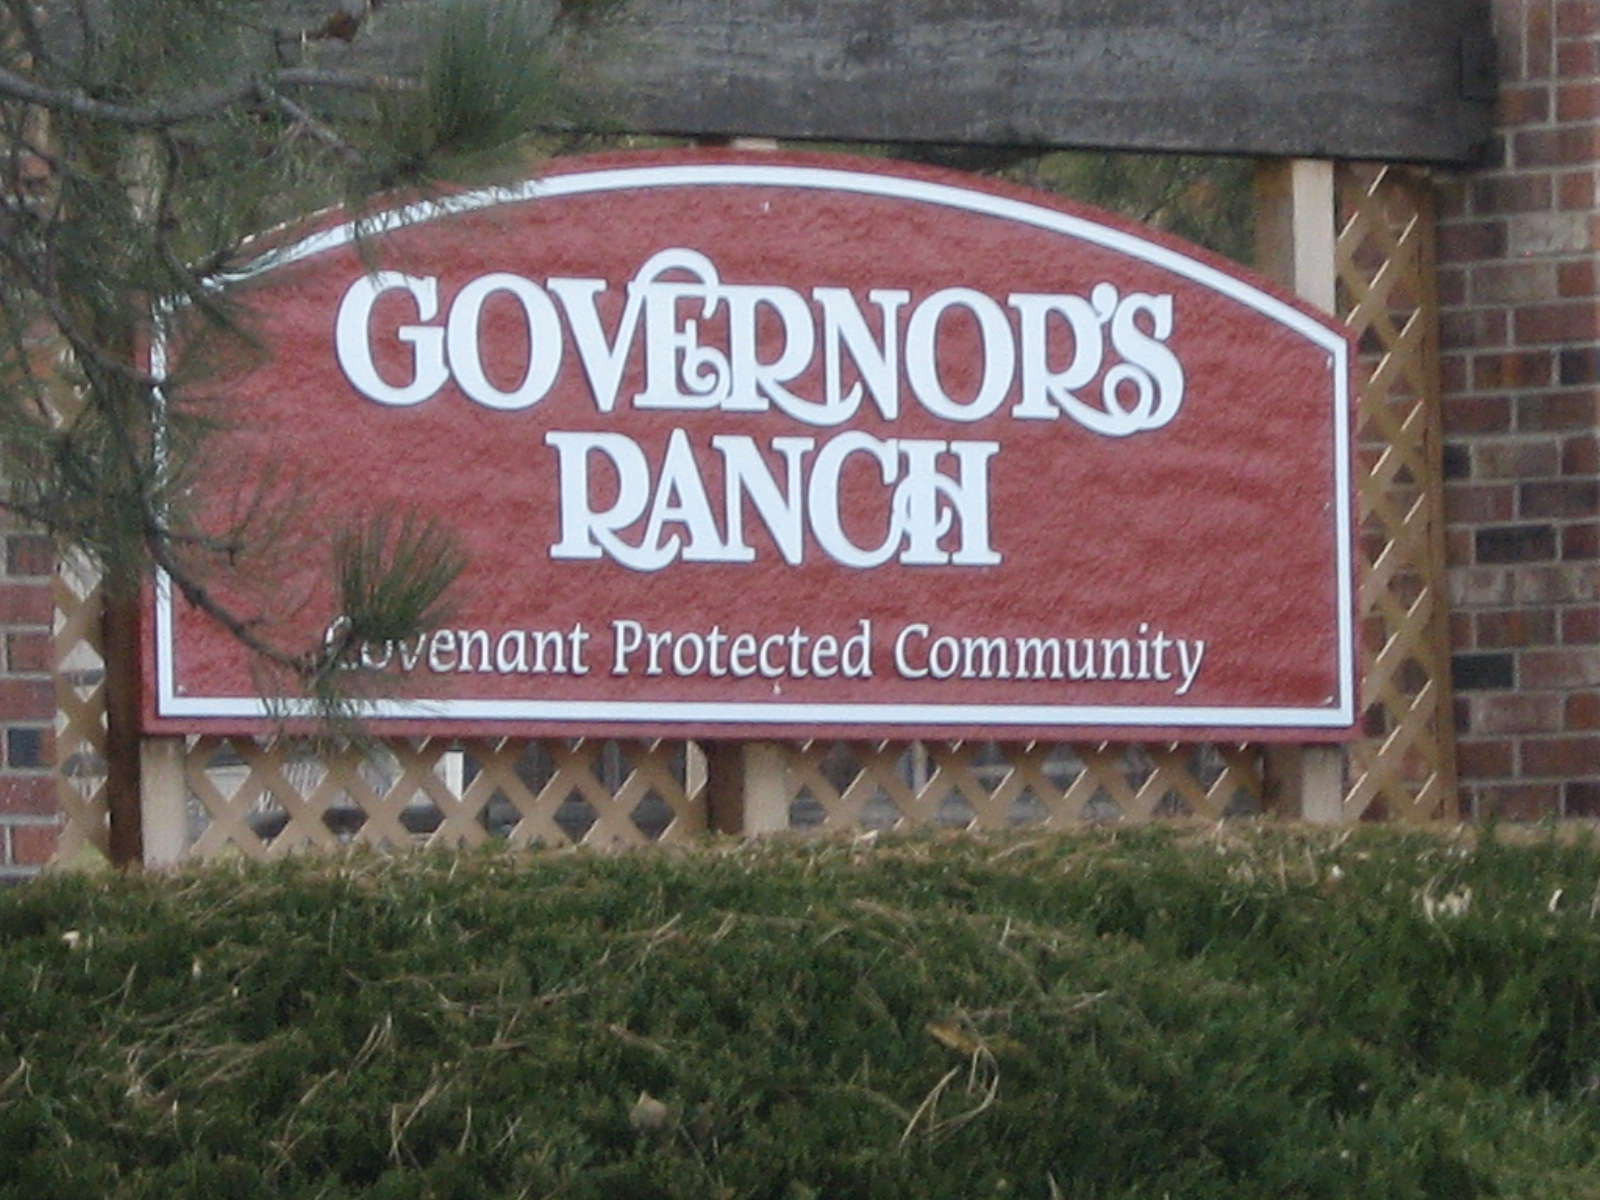 Governor's Ranch